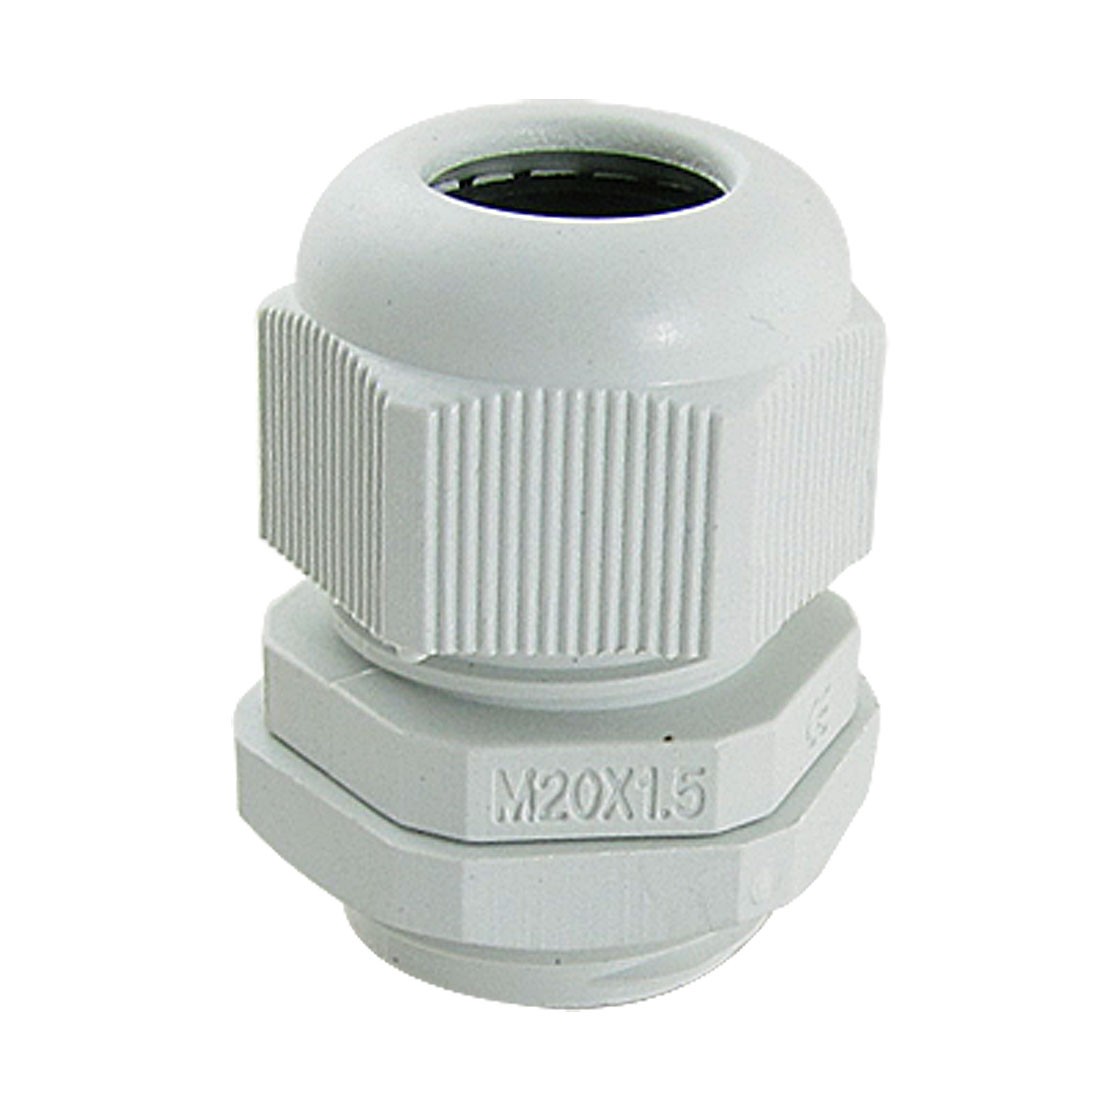 UXCELL 10 Pcs White Plastic Waterproof Cable Glands M20 X 1.5